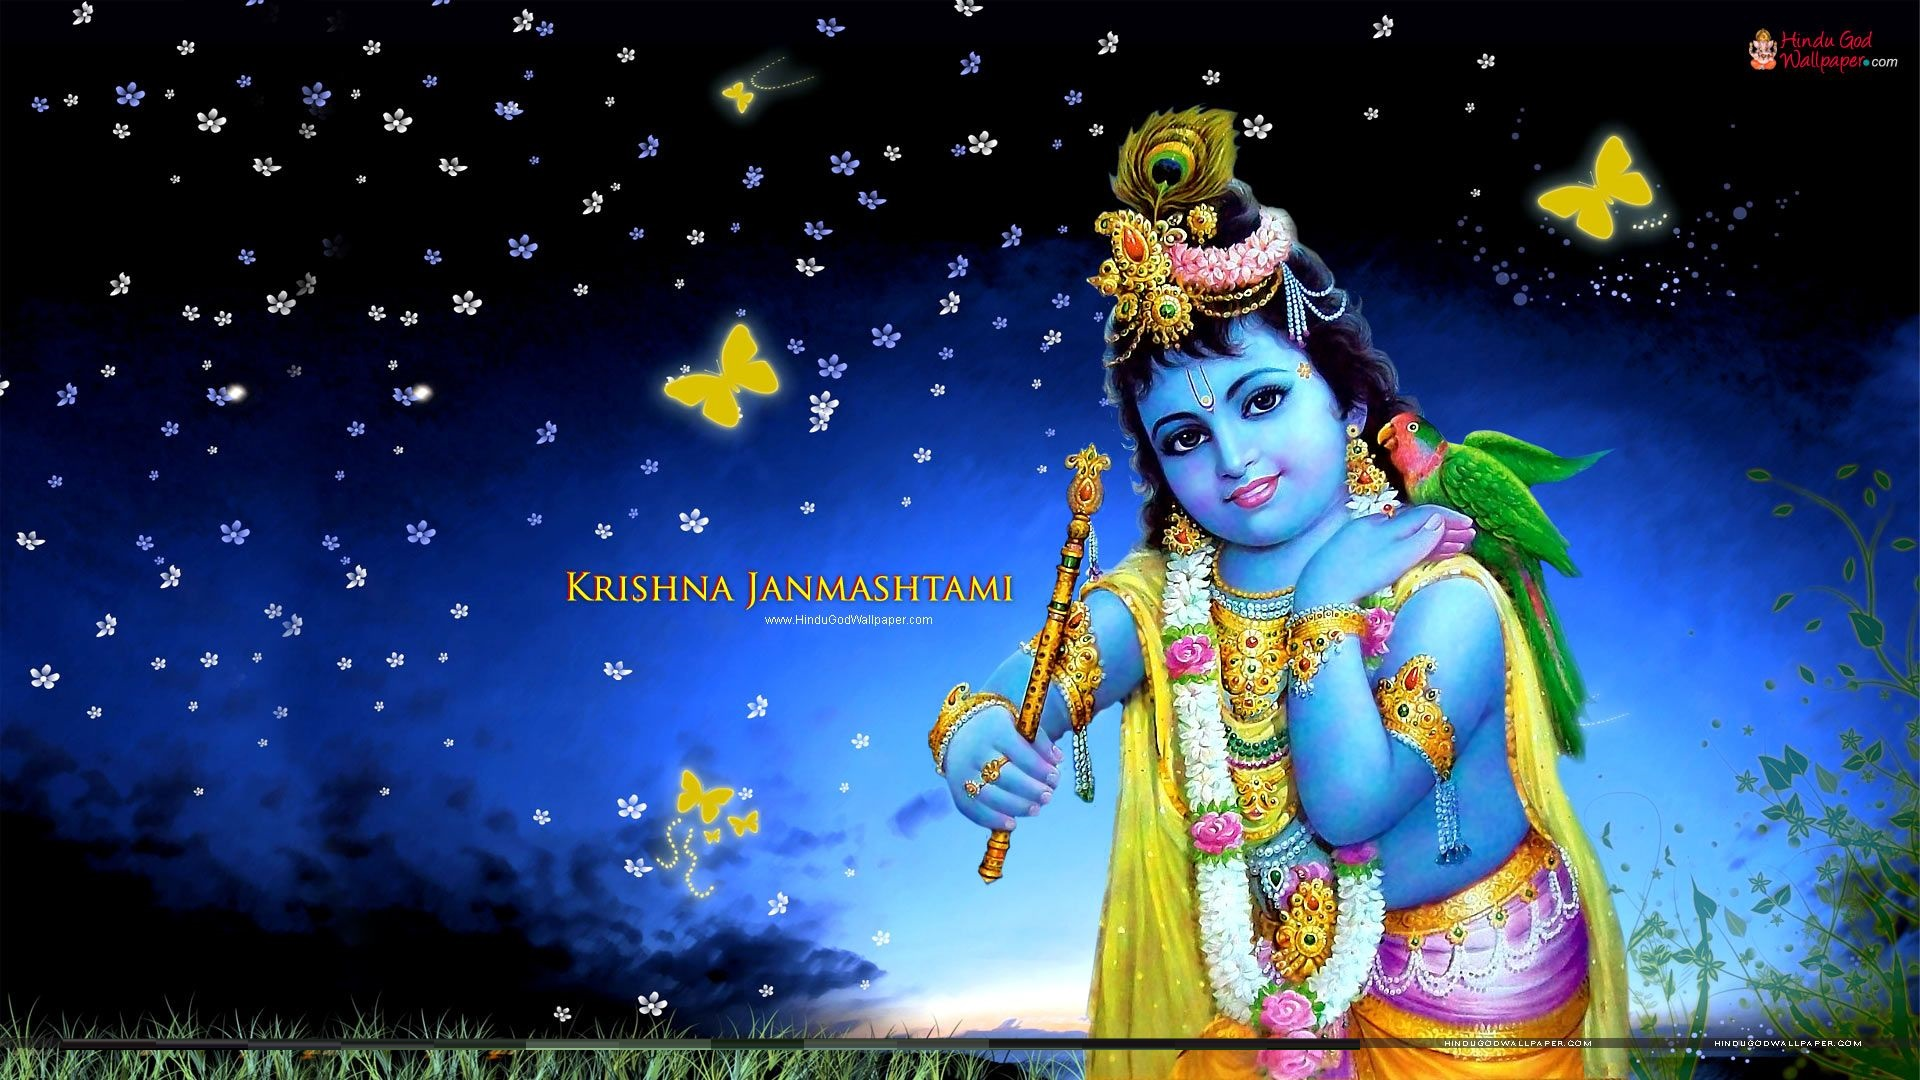 Krishna Janmashtami Images For Whatsapp DP Profile, HD Wallpapers– Free Download